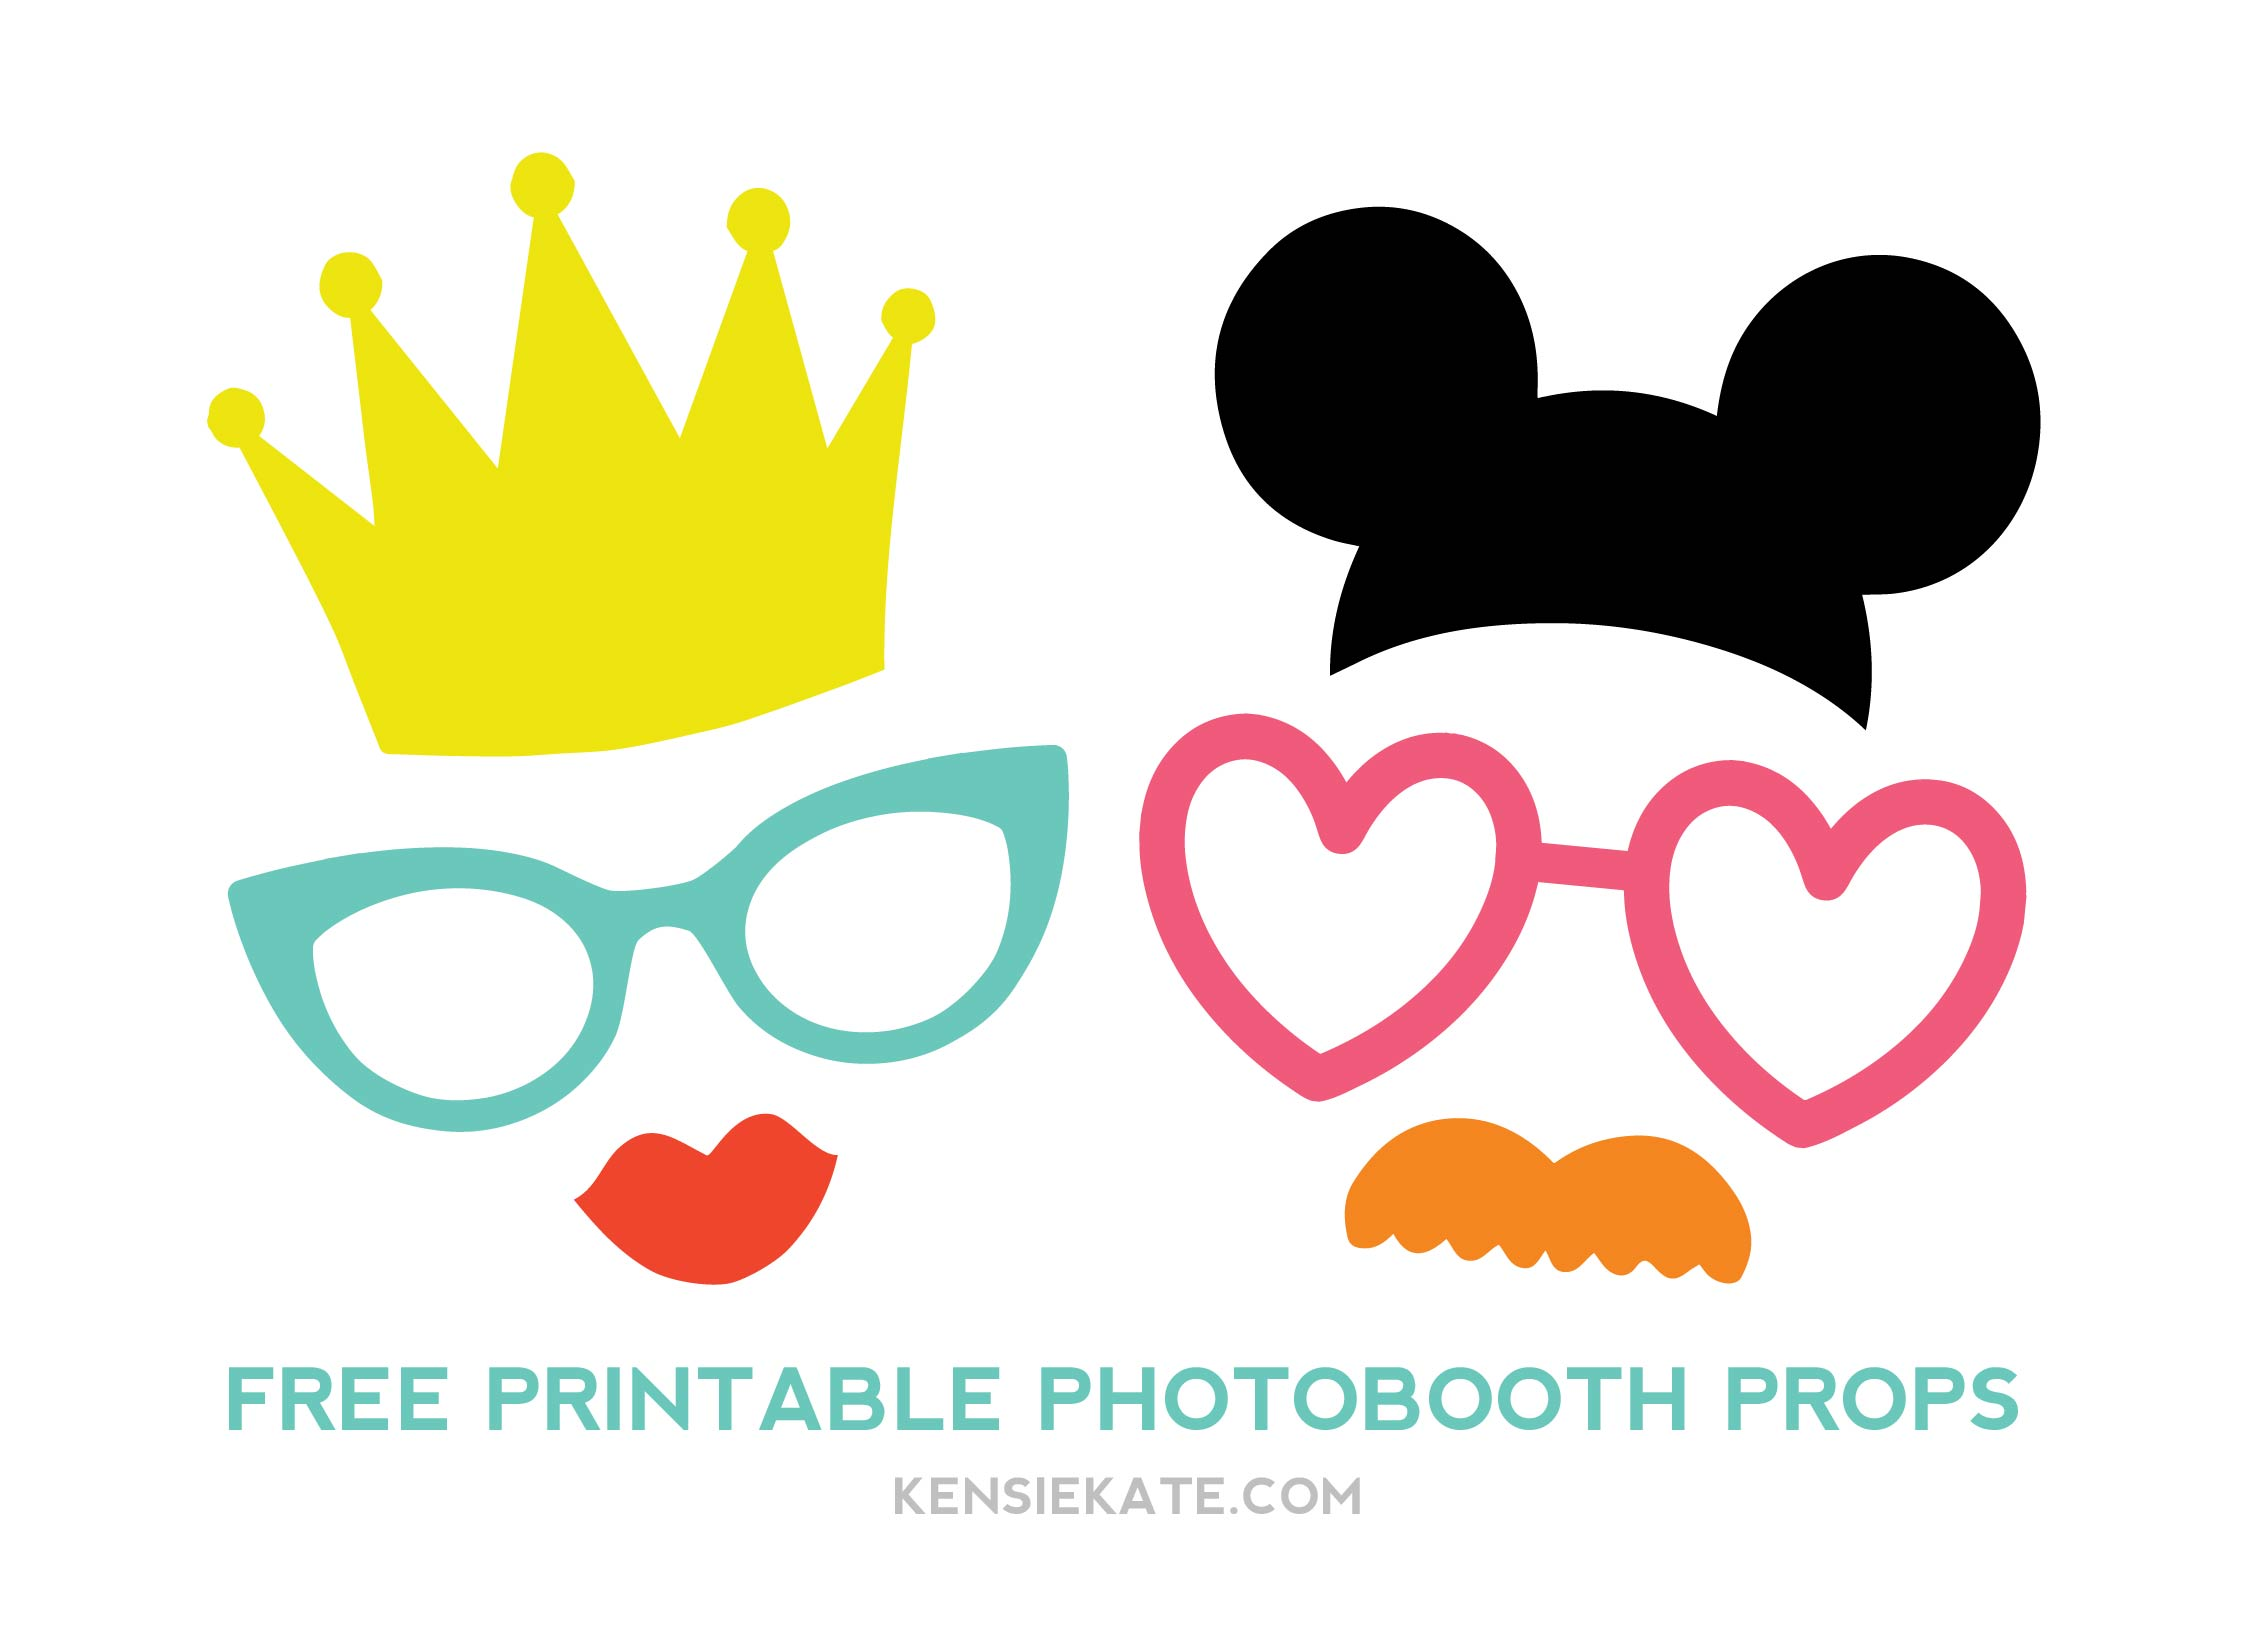 More photobooth props kensie kate for Templates for photo booth props